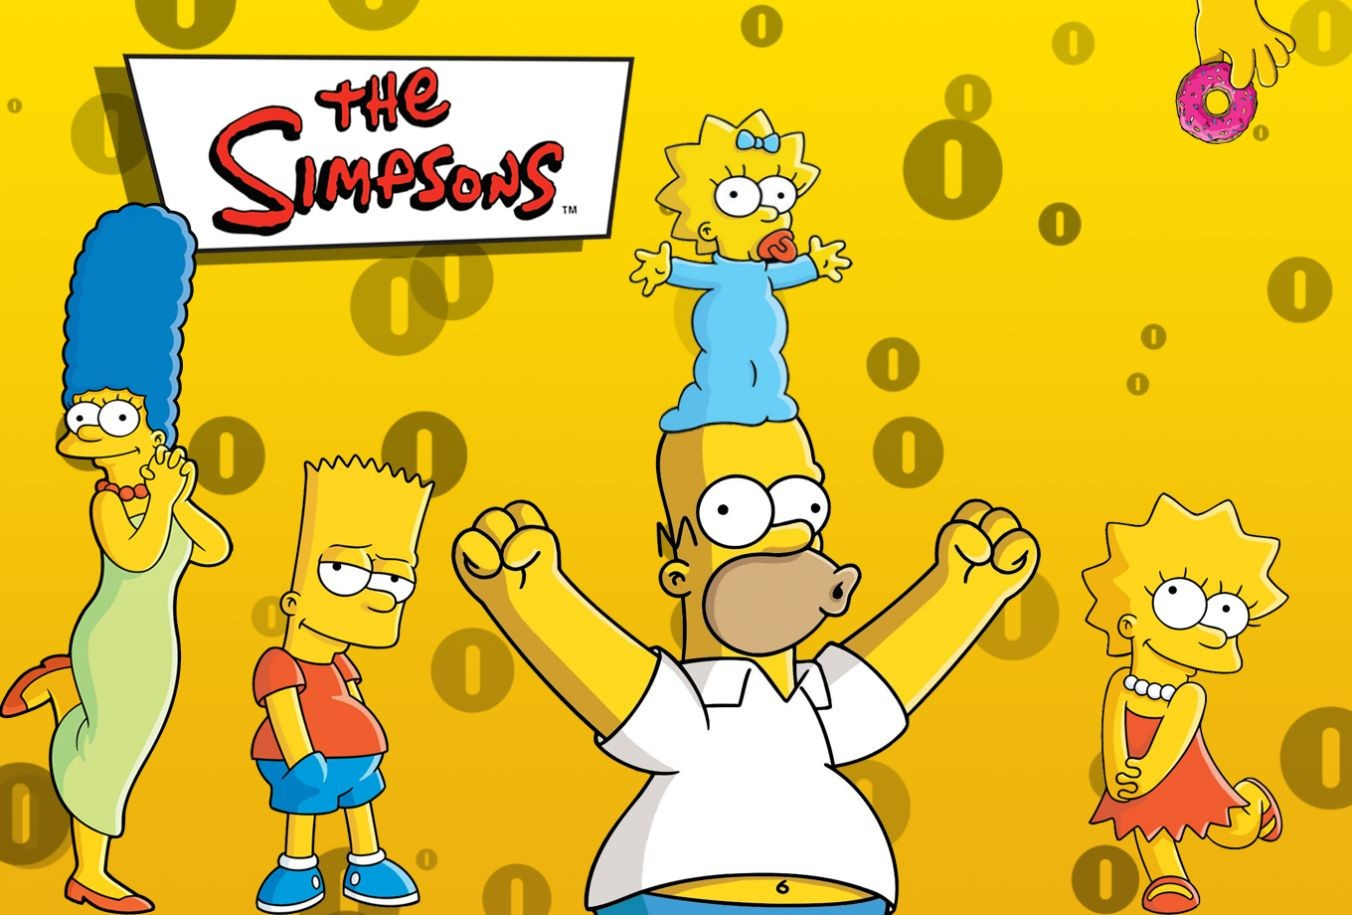 Rolling Girls Wallpaper 1920 The Simpsons Marge Simpson Bart Simpson Maggie Simpson